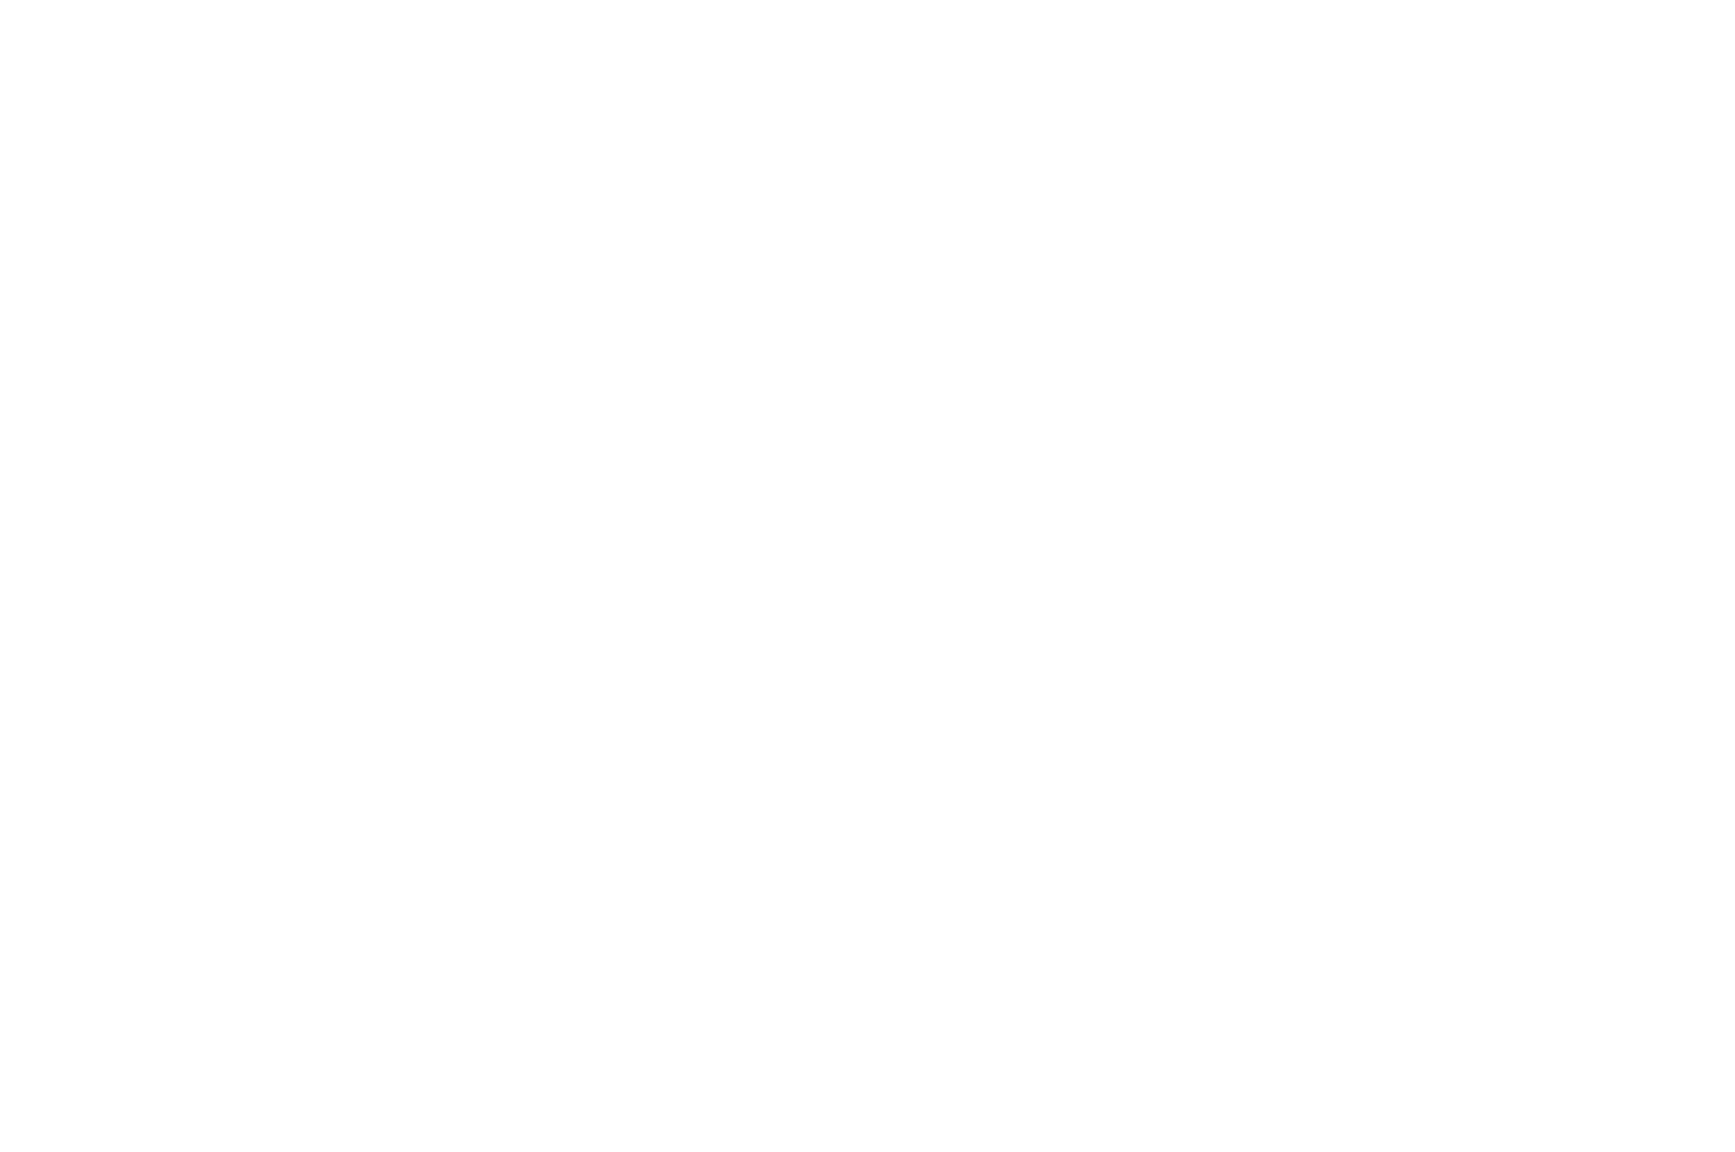 TOP 10 FINALIST - Cinema City International Film Festival Screenplay Competition